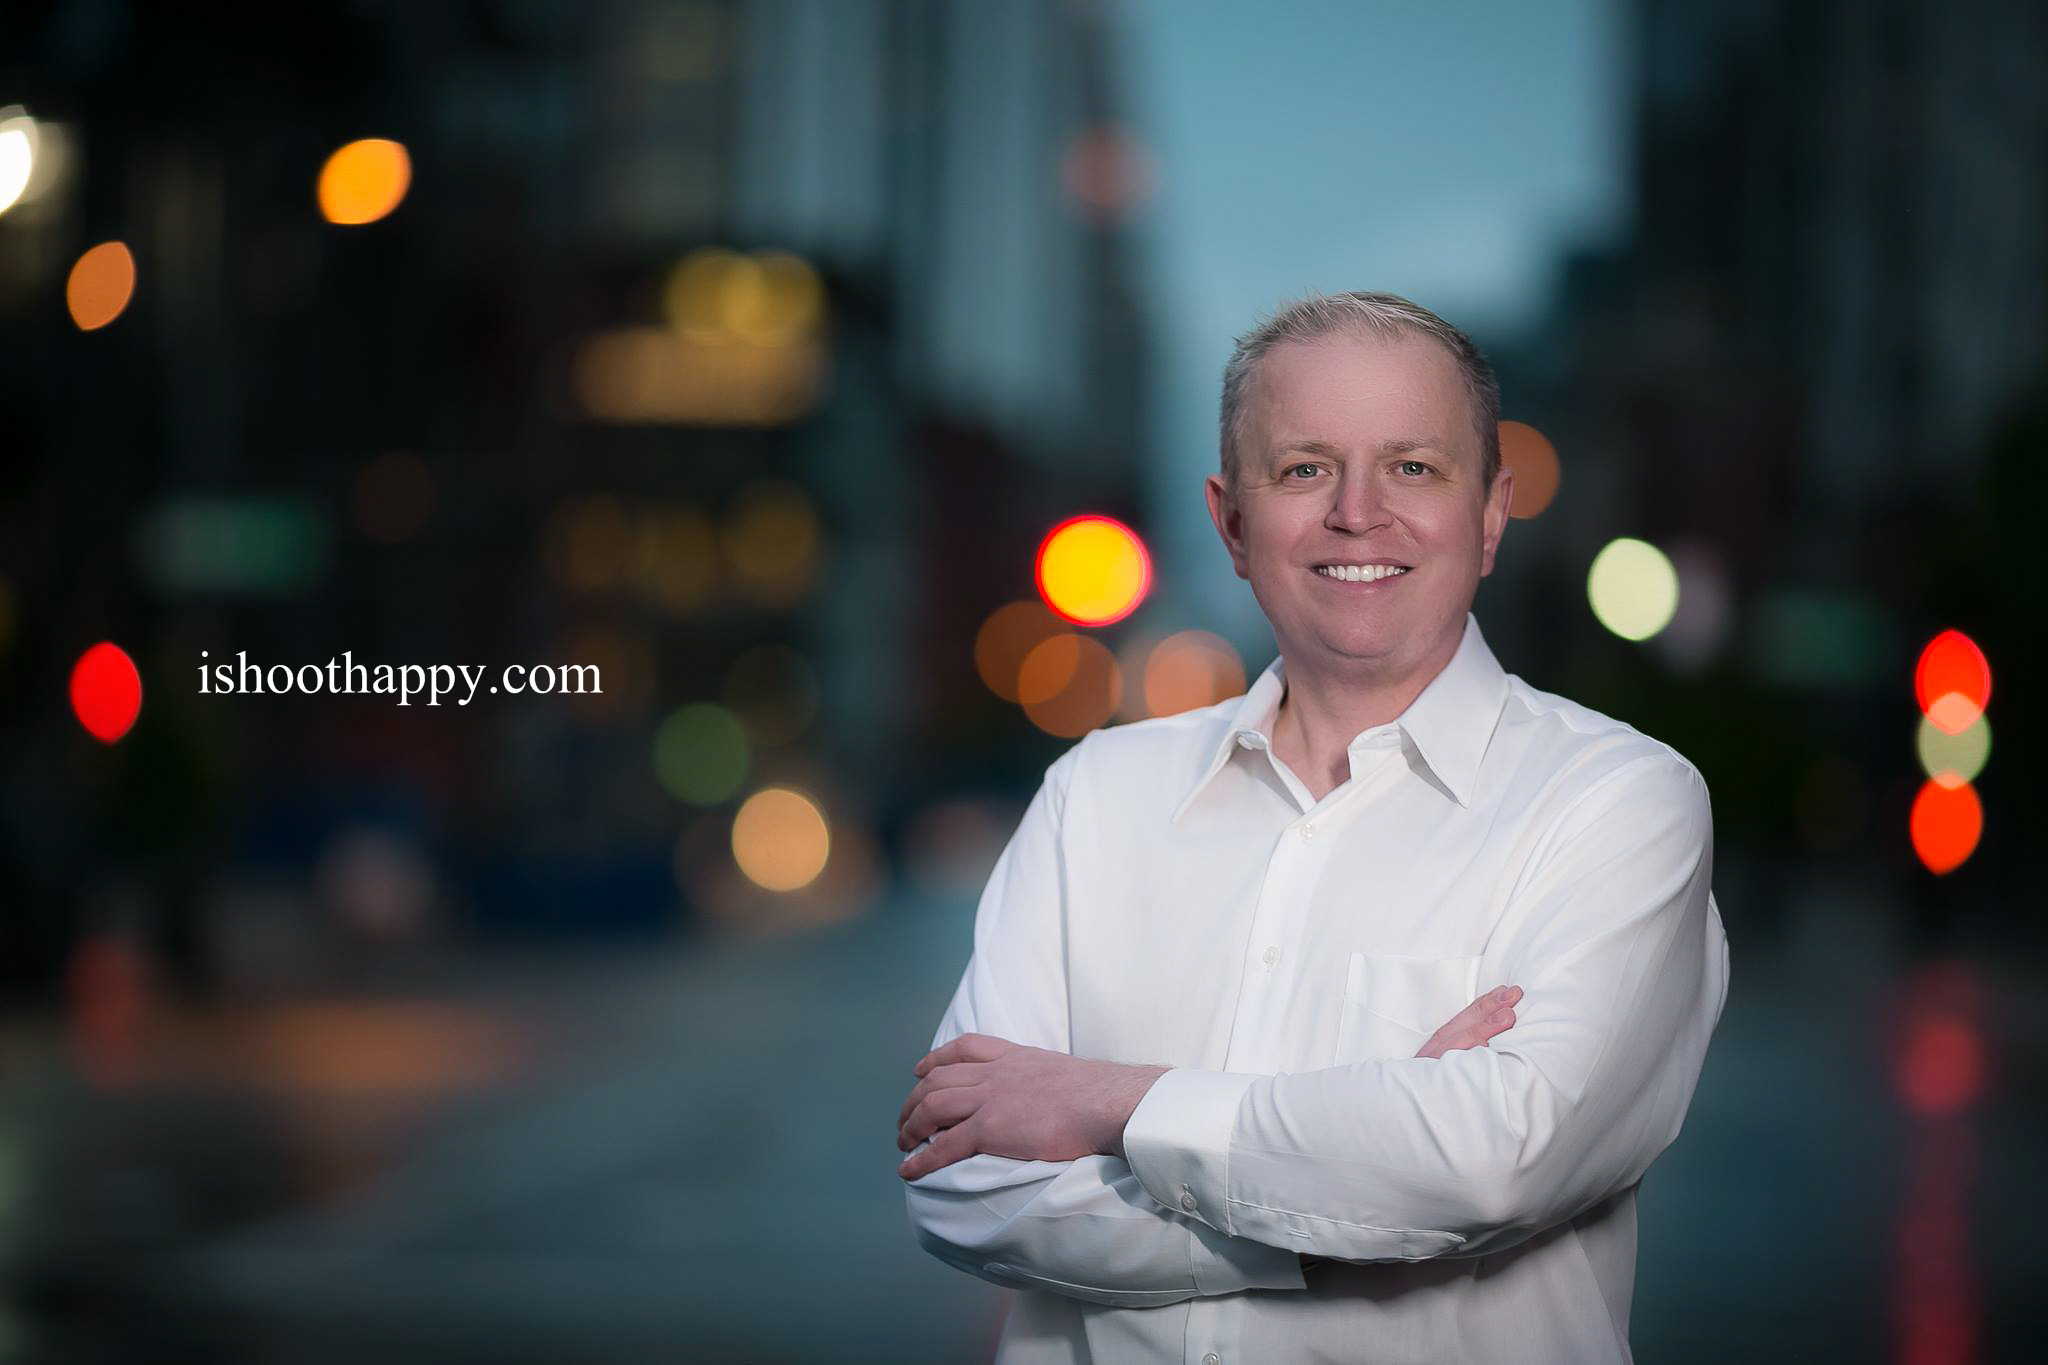 denver photography, denver photographer, denver headshots, colorado head shot, profile photos, social media photo, dating profile photo, dating photo, tinder profile photo, head shot, headshots, night portrait, reflections, night portrait